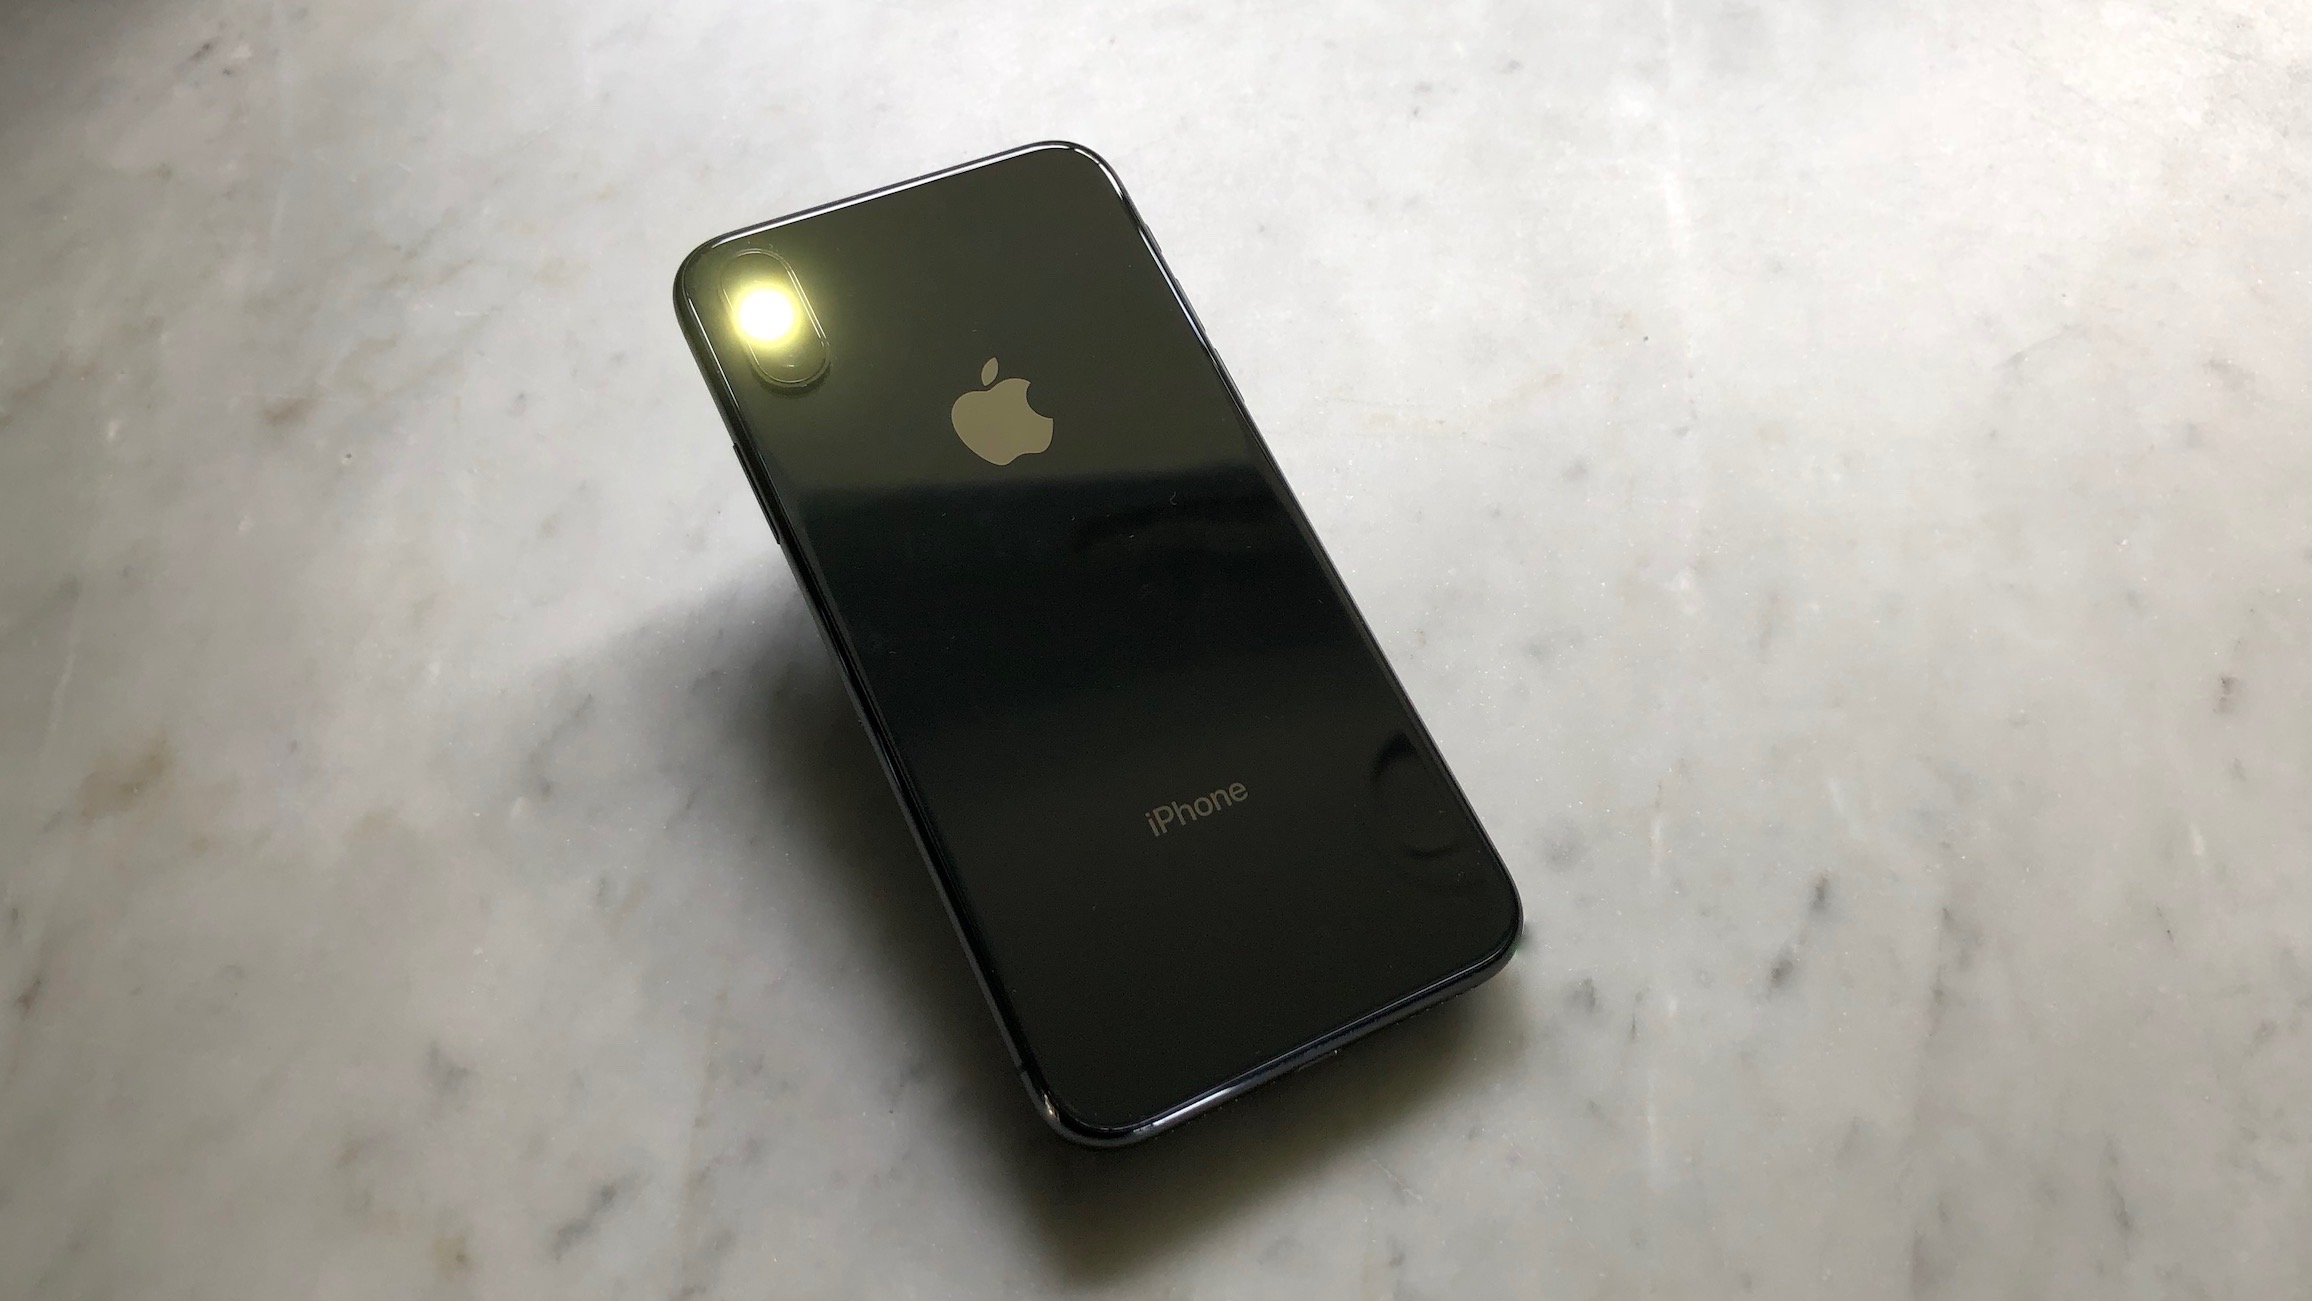 How to flash Chinese iPhone